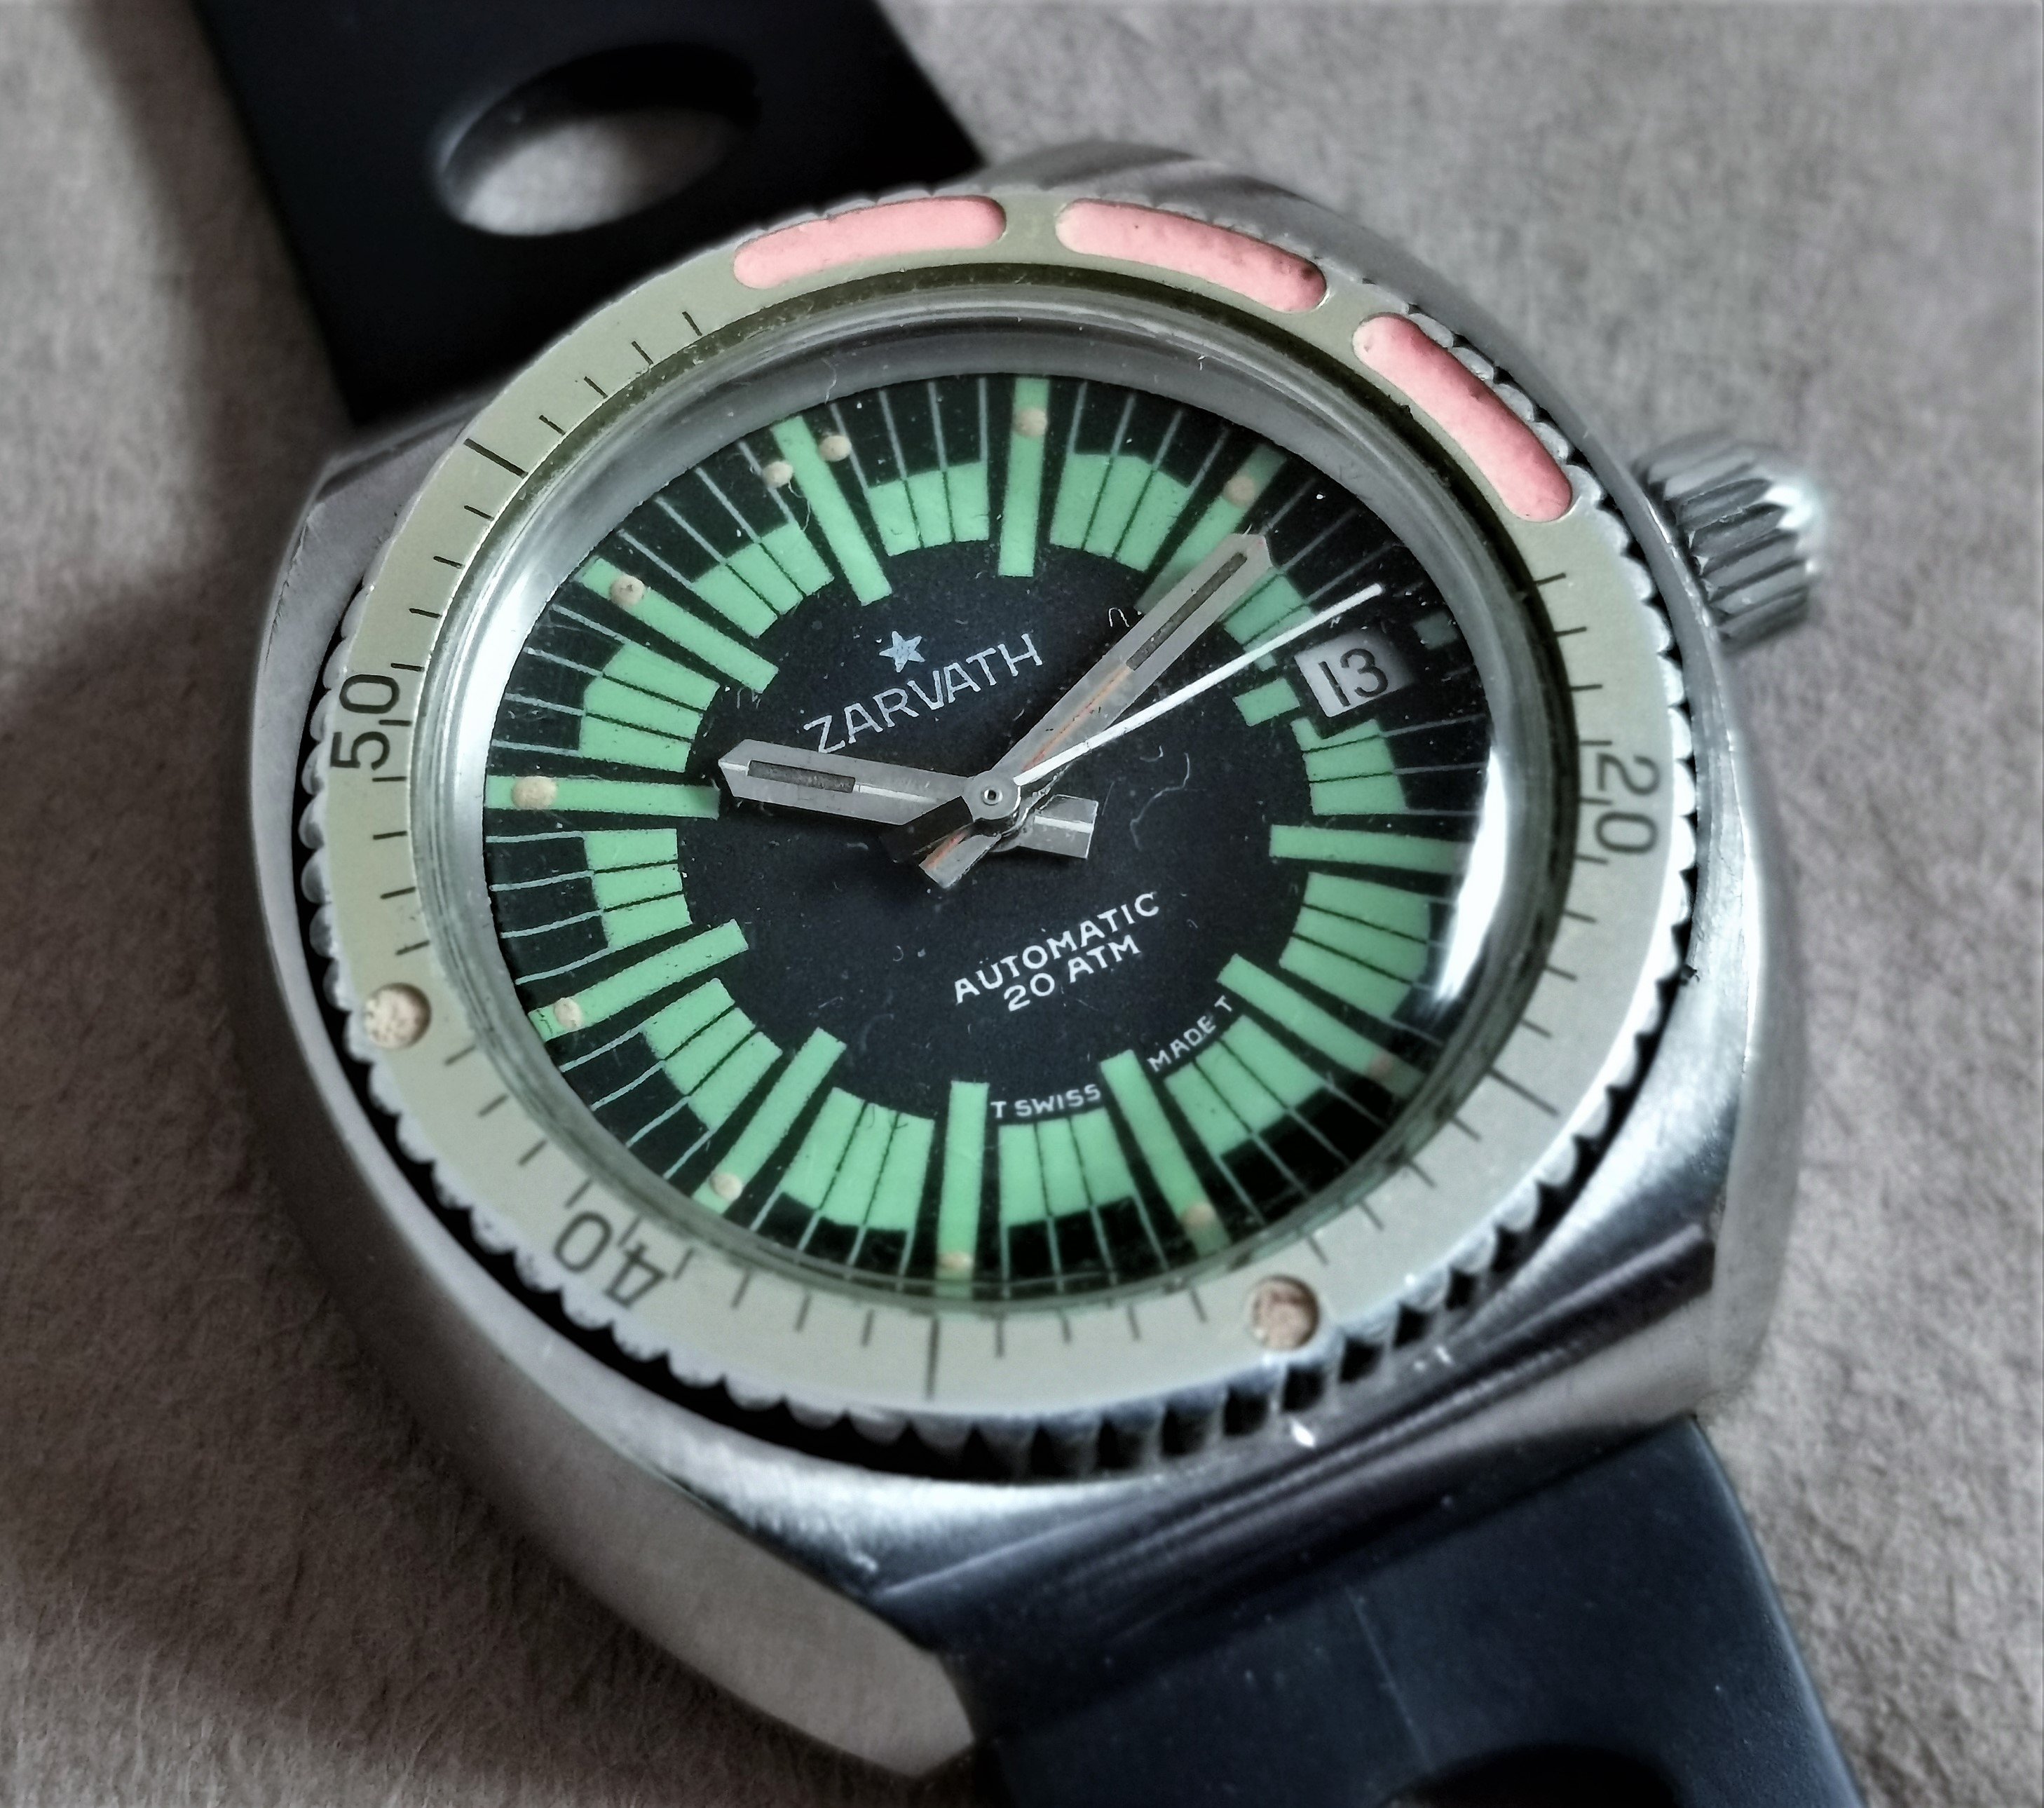 Anonimo Zarvath Rare diver vintage mm 40 screw case and crown 200 Mt rotating bezel